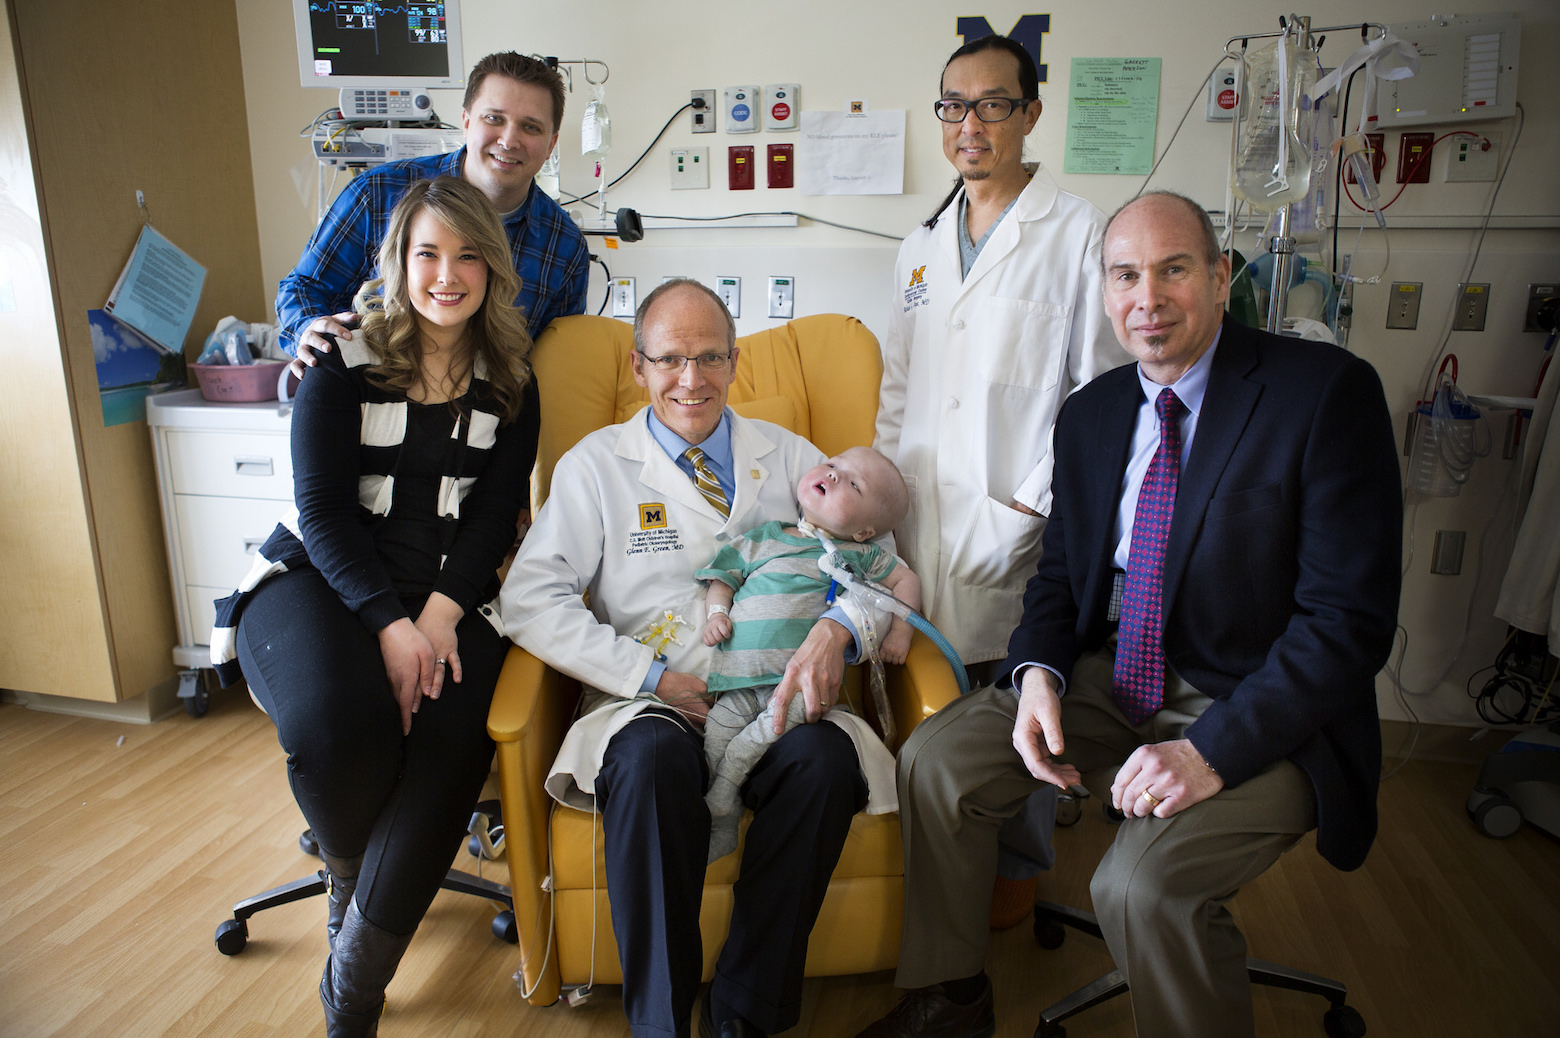 The Petrson family poses with Doctors who saved Garrett Peterson's life with 3-D splint technology at Mott's Children Hospital in Ann Arbor, MI on March 4, 2014.